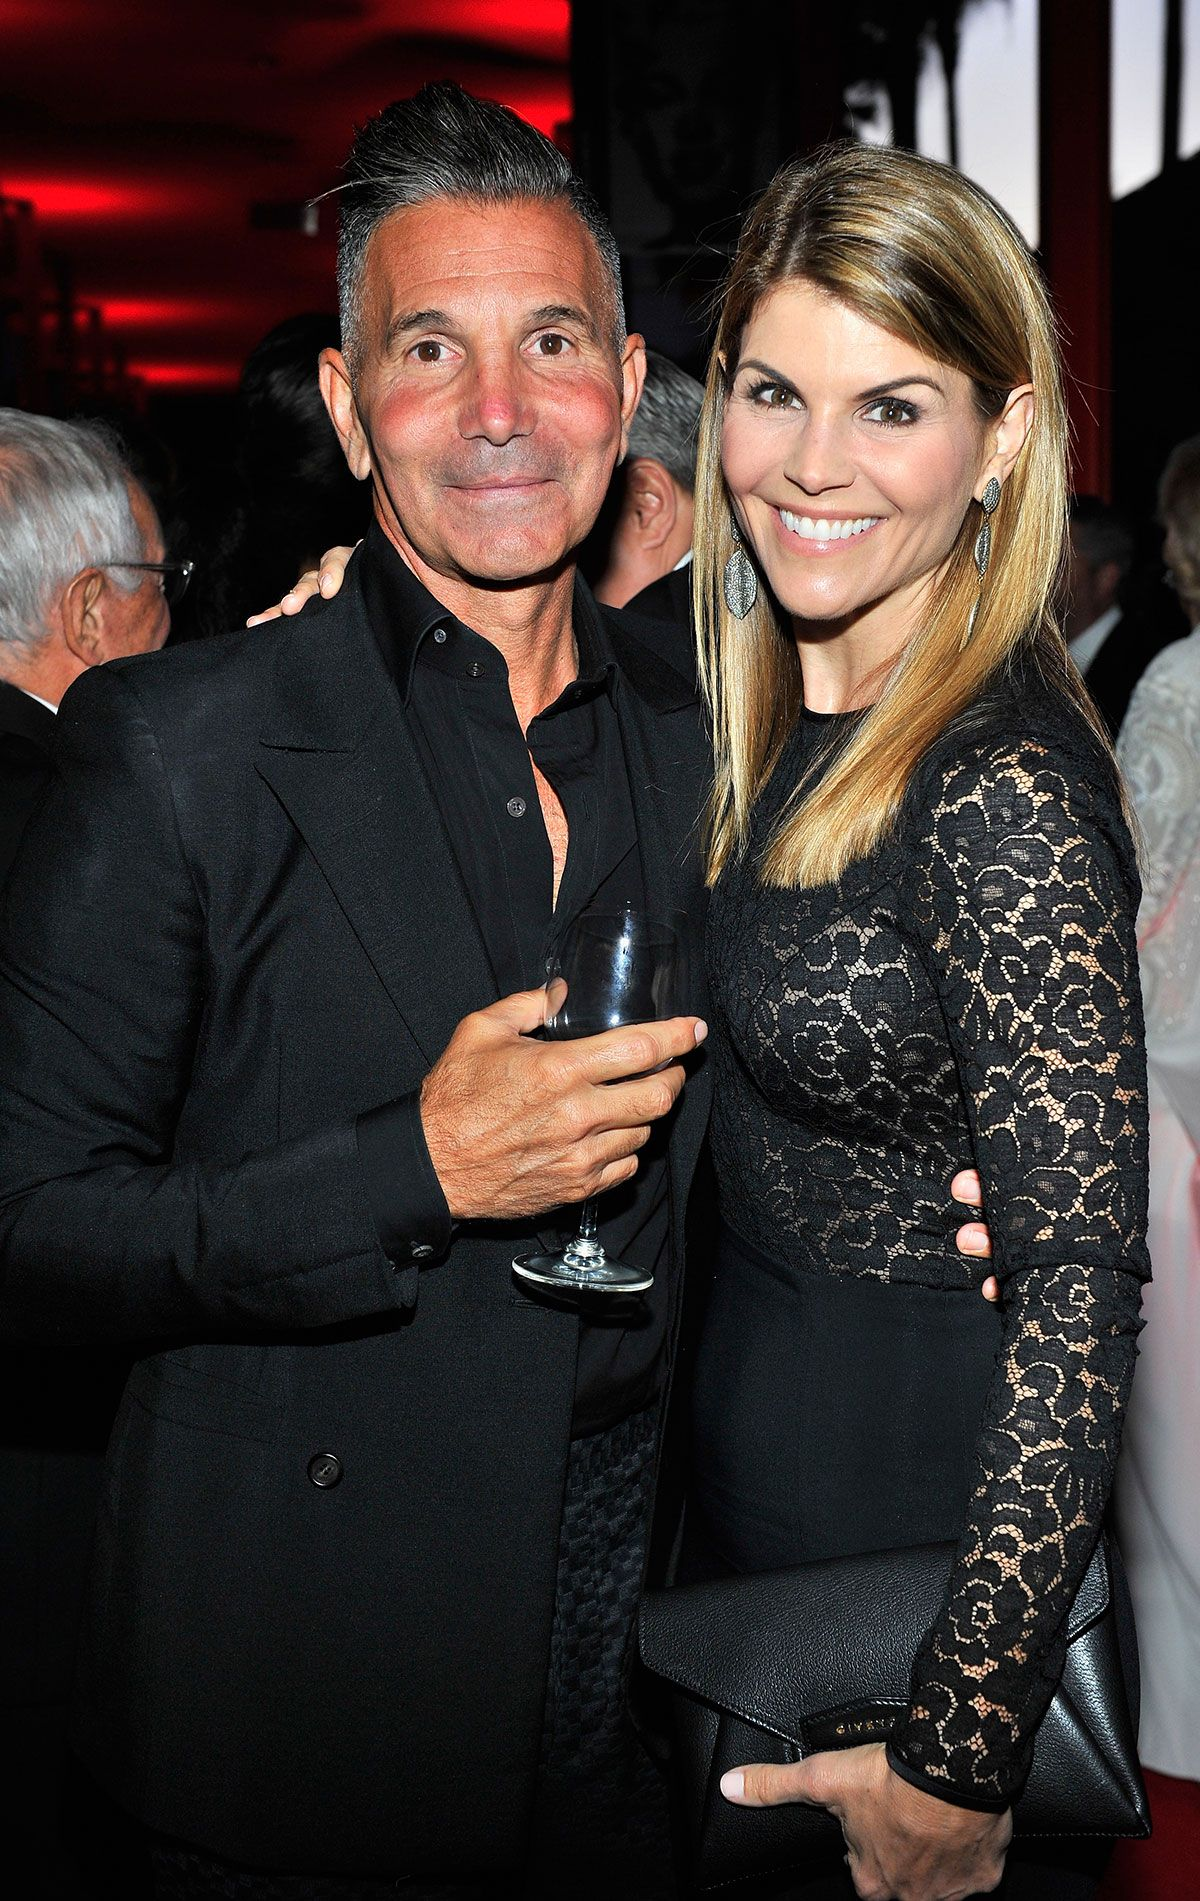 Every Detail of Lori Loughlin and Husband Mossimo Giannulli's Marriage and Legal Battle